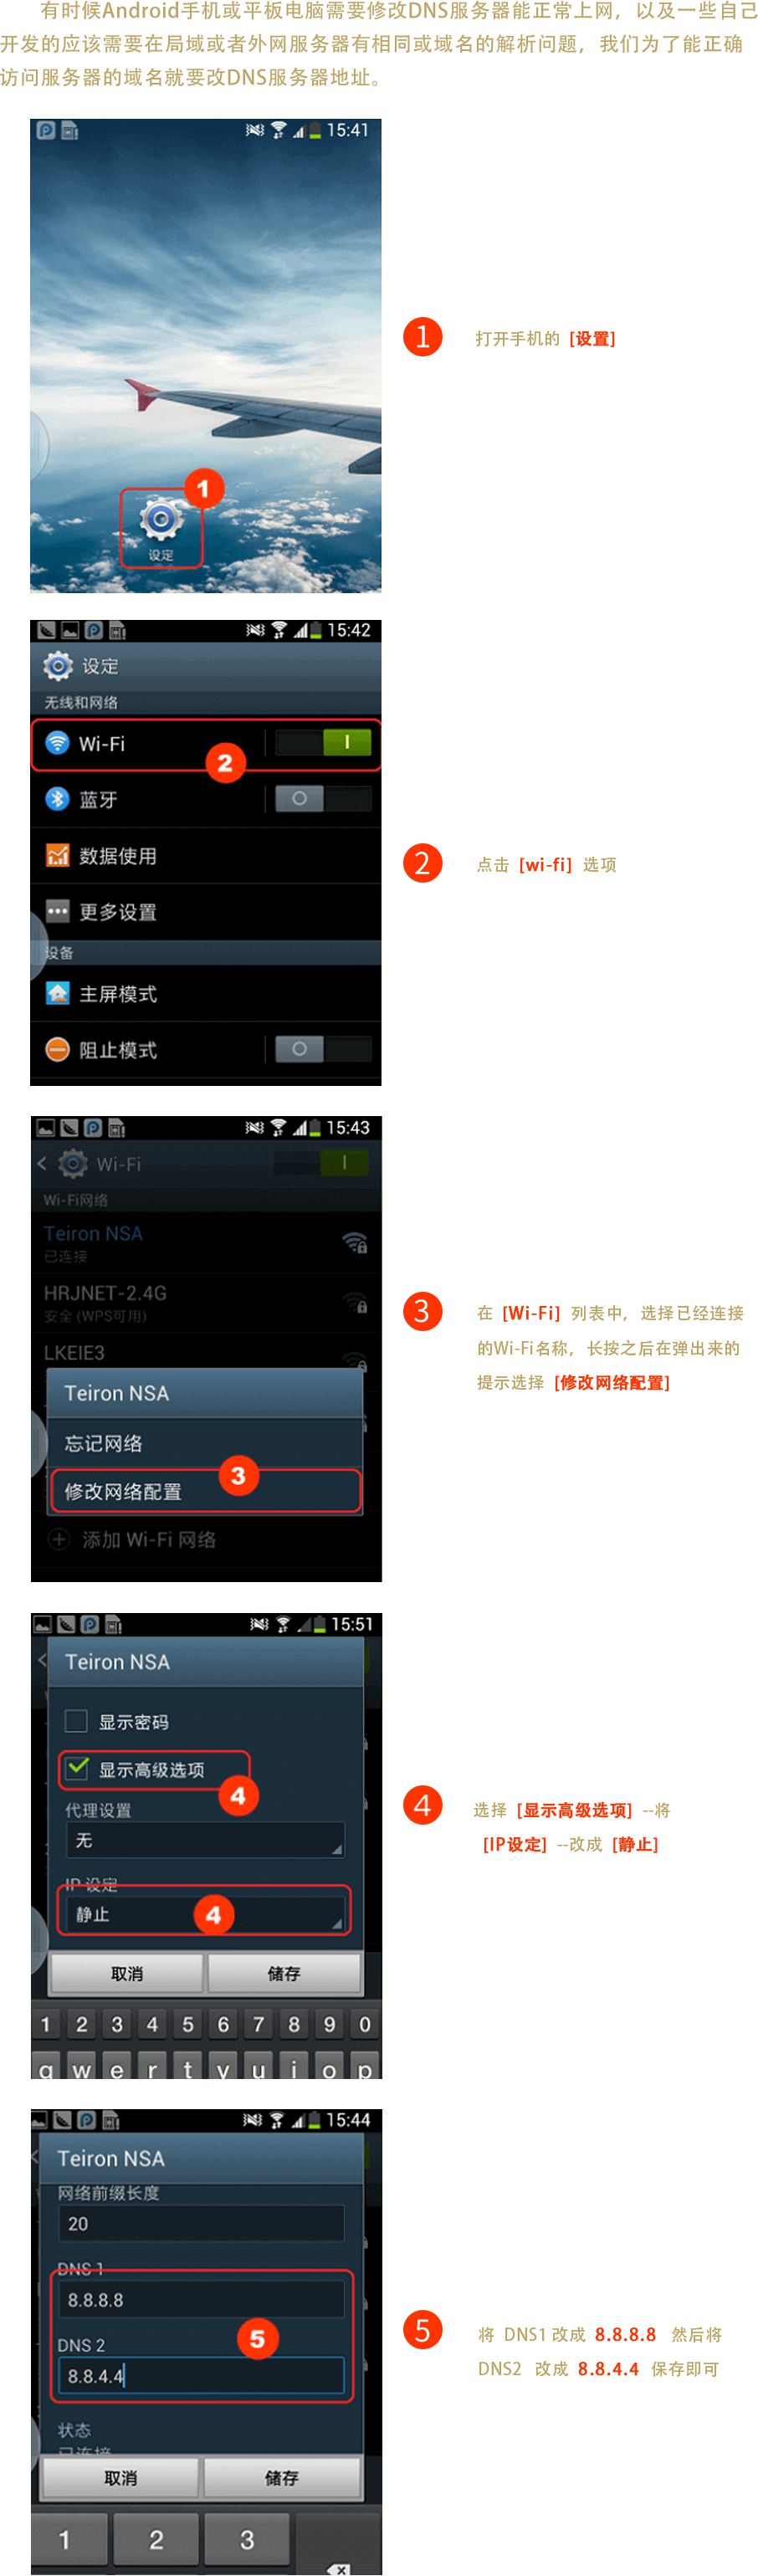 Android 教程